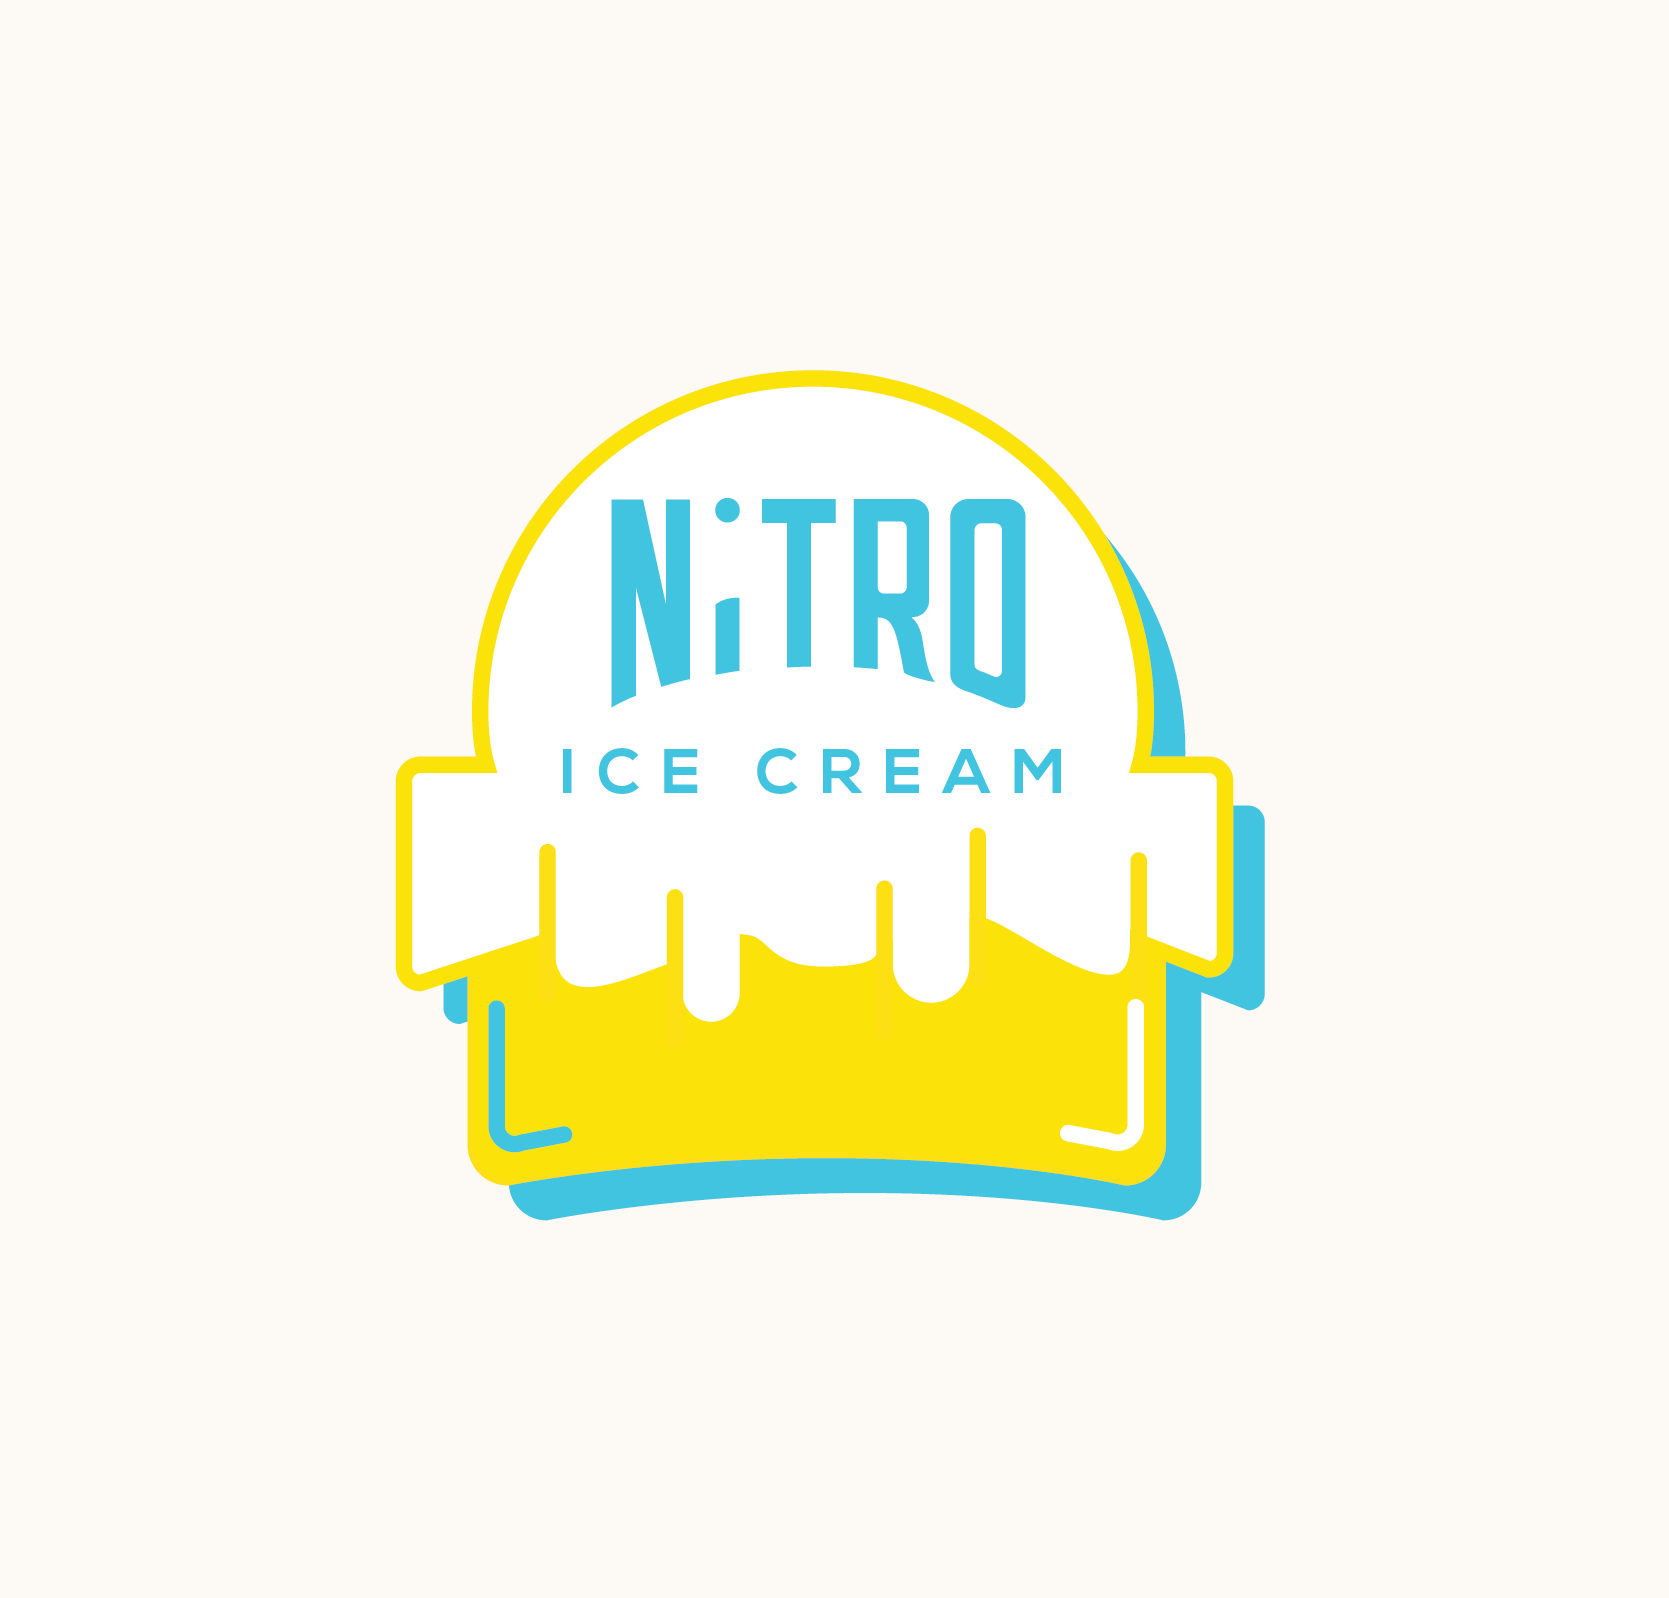 NitroIceCream_WebEdits-03.png